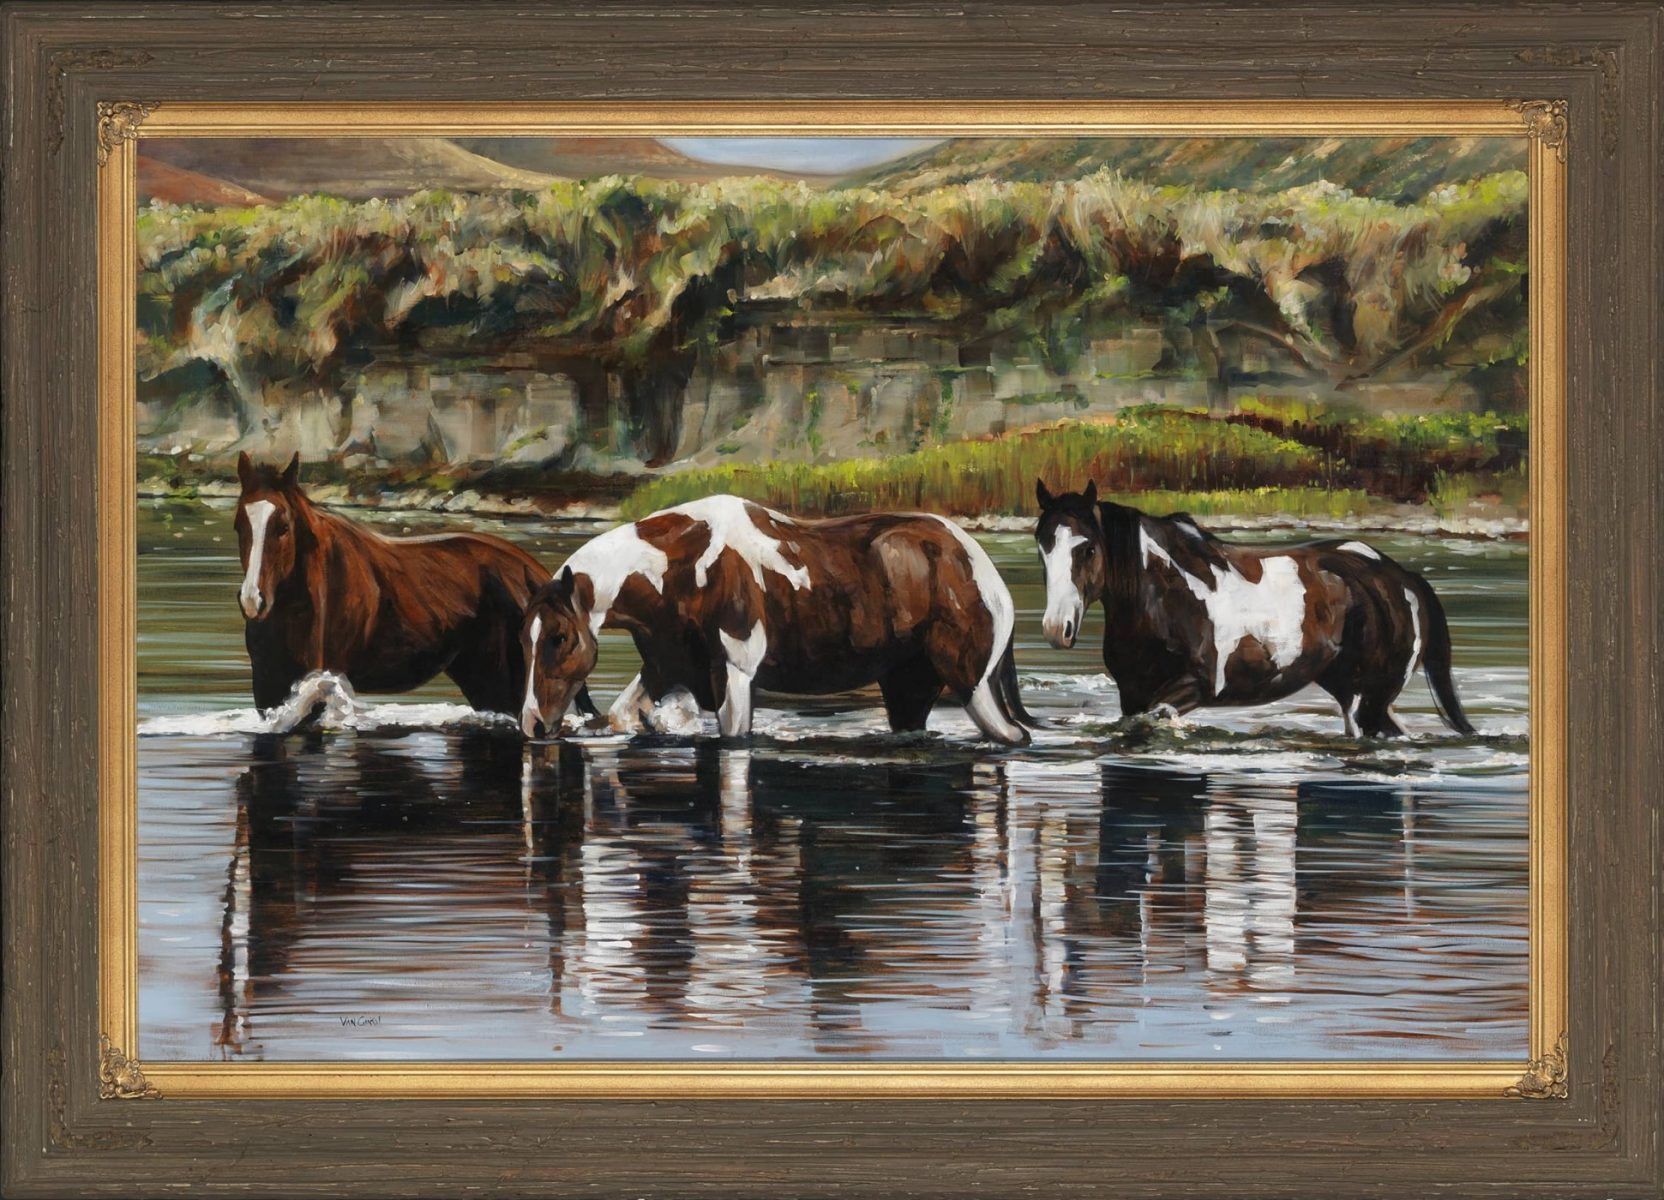 Friendship painting of horses by artist Paul Van Ginkel